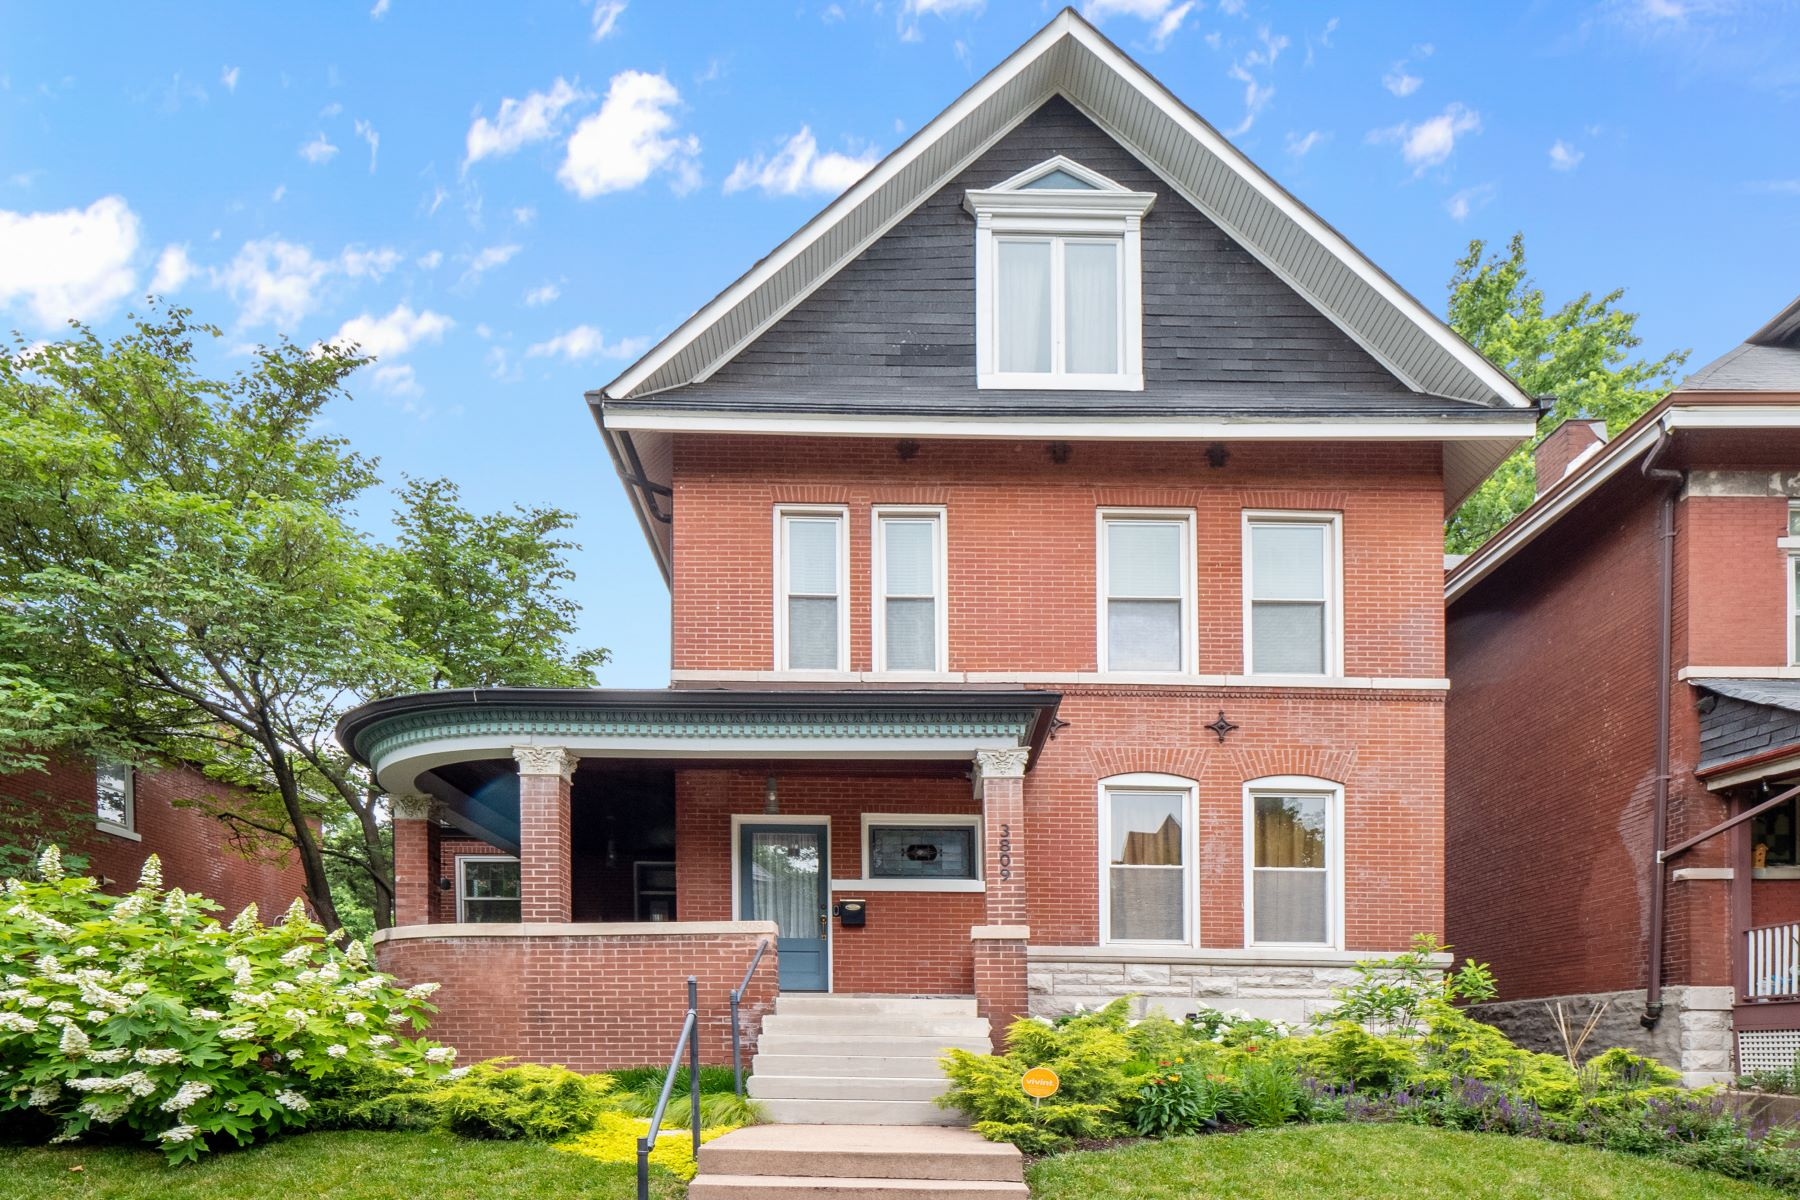 Single Family Homes for Sale at Incredible Shaw Neighborhood Home! 3809 Cleveland Avenue St. Louis, Missouri 63110 United States